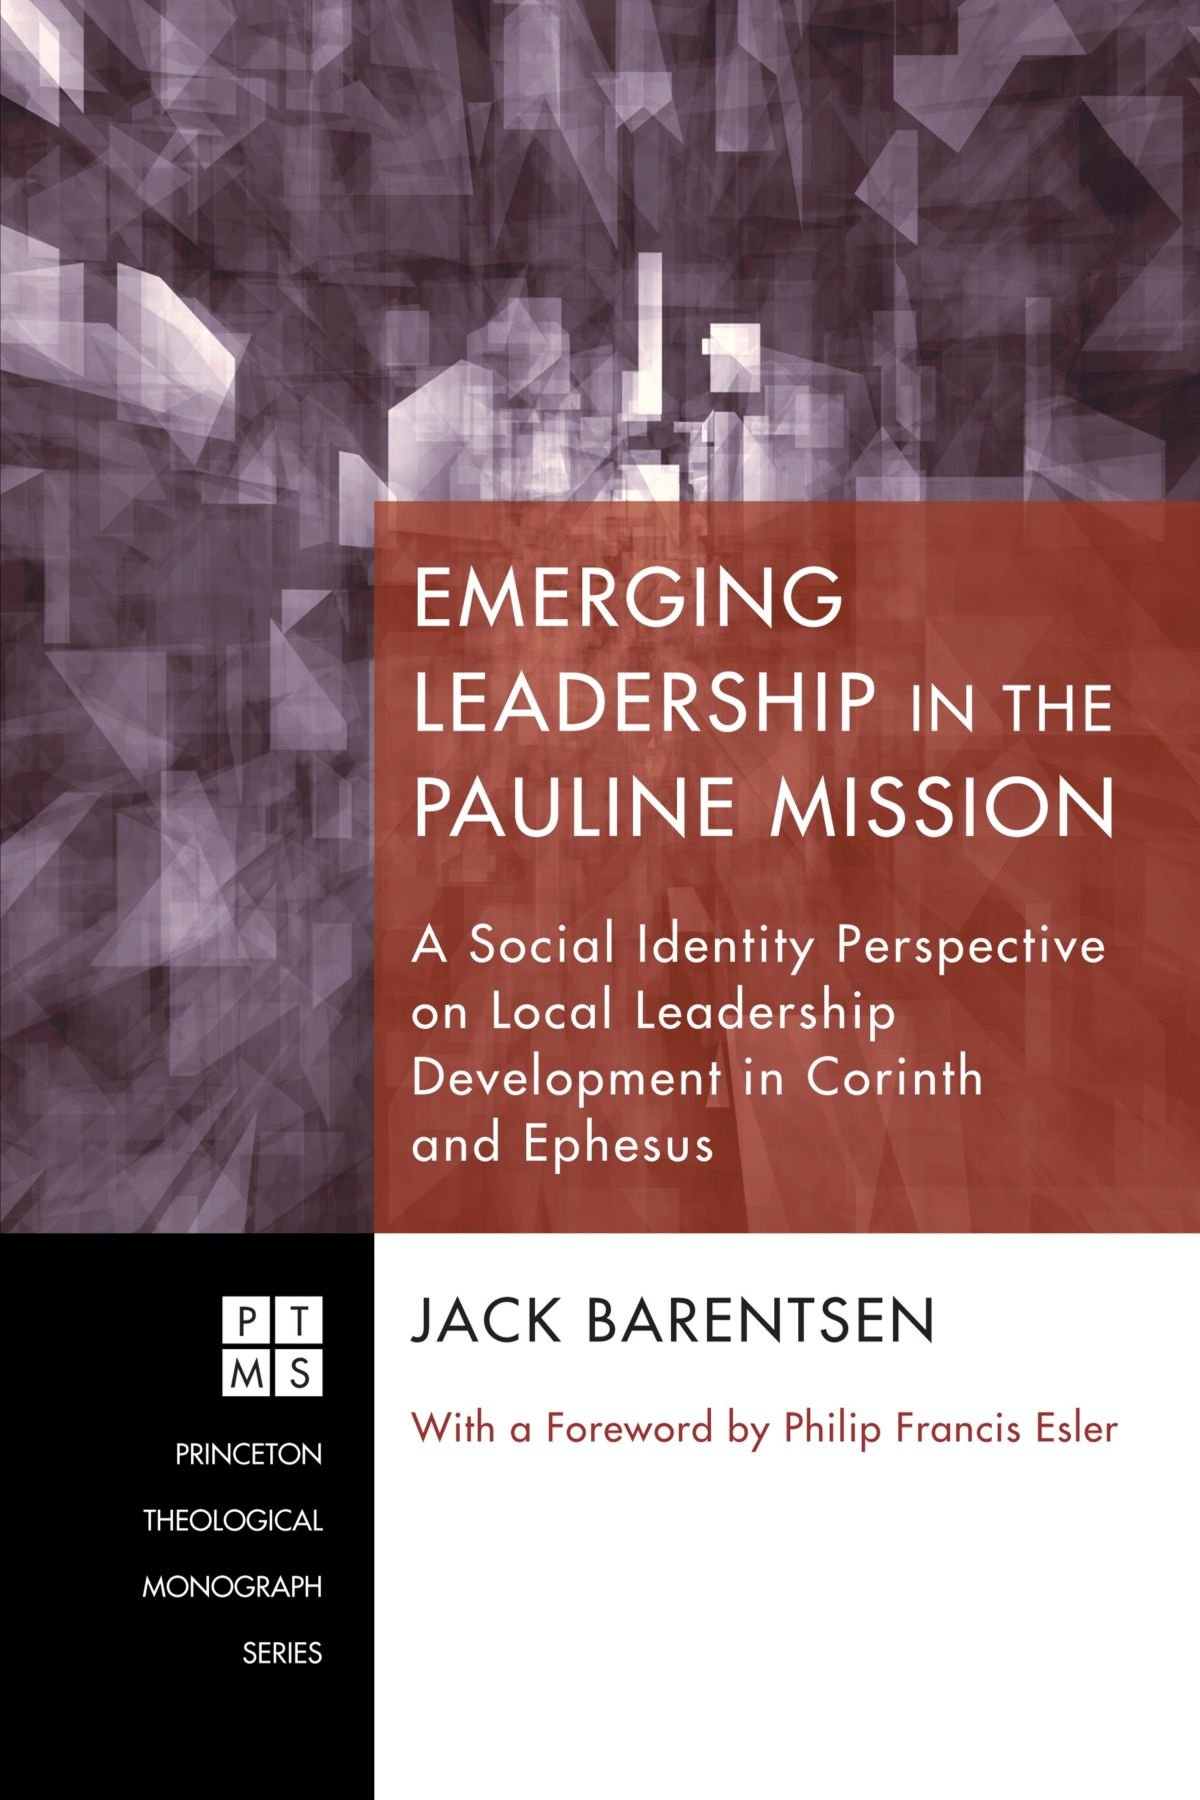 Emerging Leadership in the Pauline Mission: A Social Identity Perspective on Local Leadership Development in Corinth and Ephesus (Princeton Theological Monograph) pdf epub